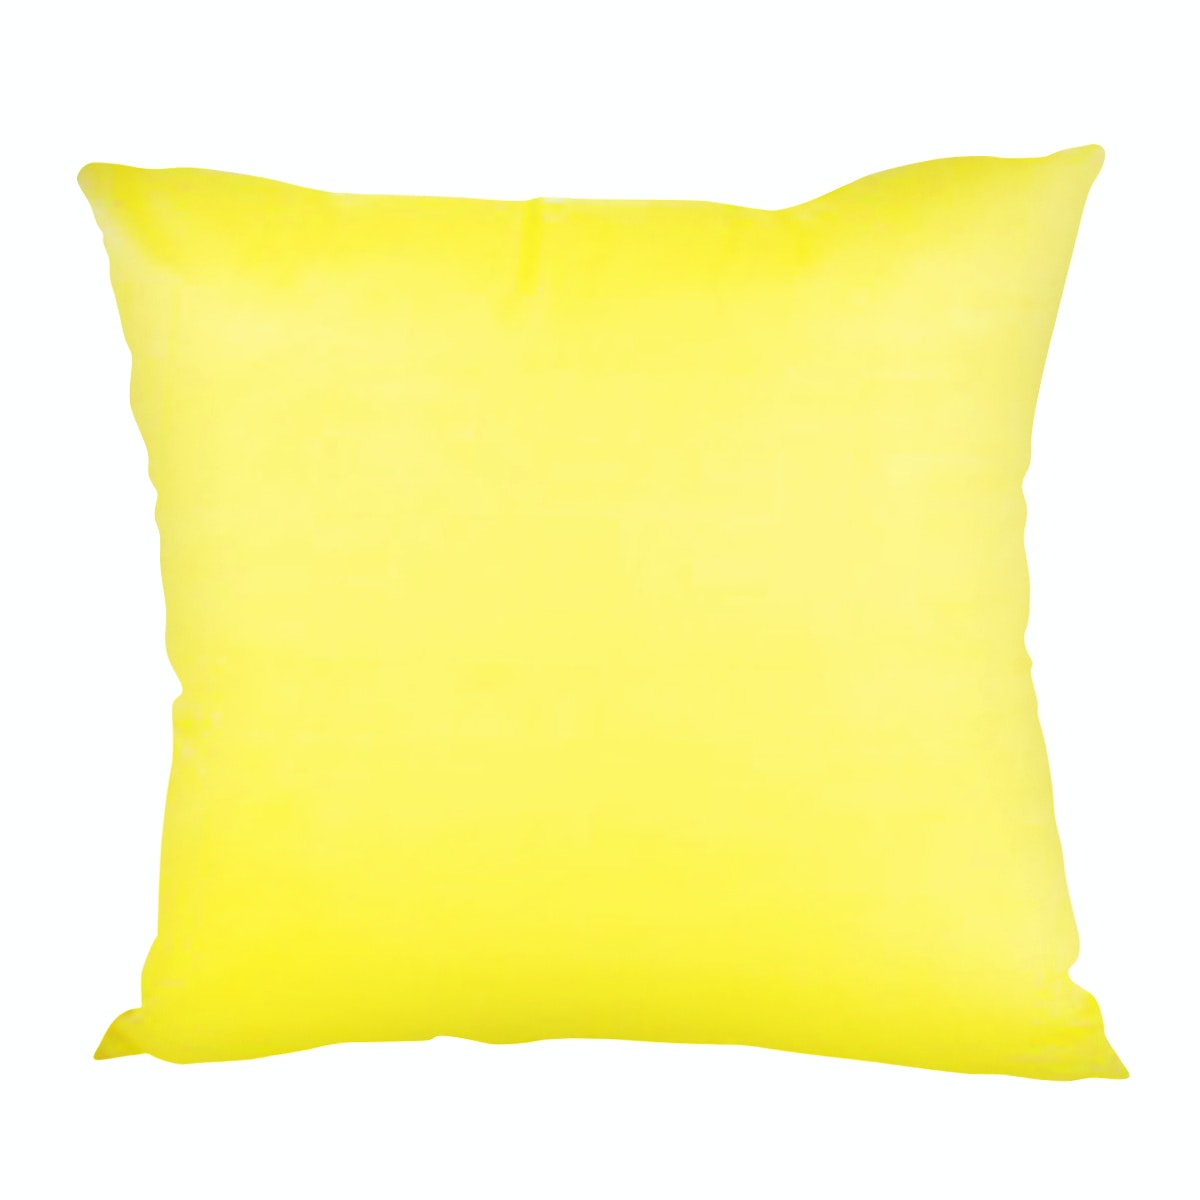 Glerry Home Decor Lemon Zest Cushion 40x40cm